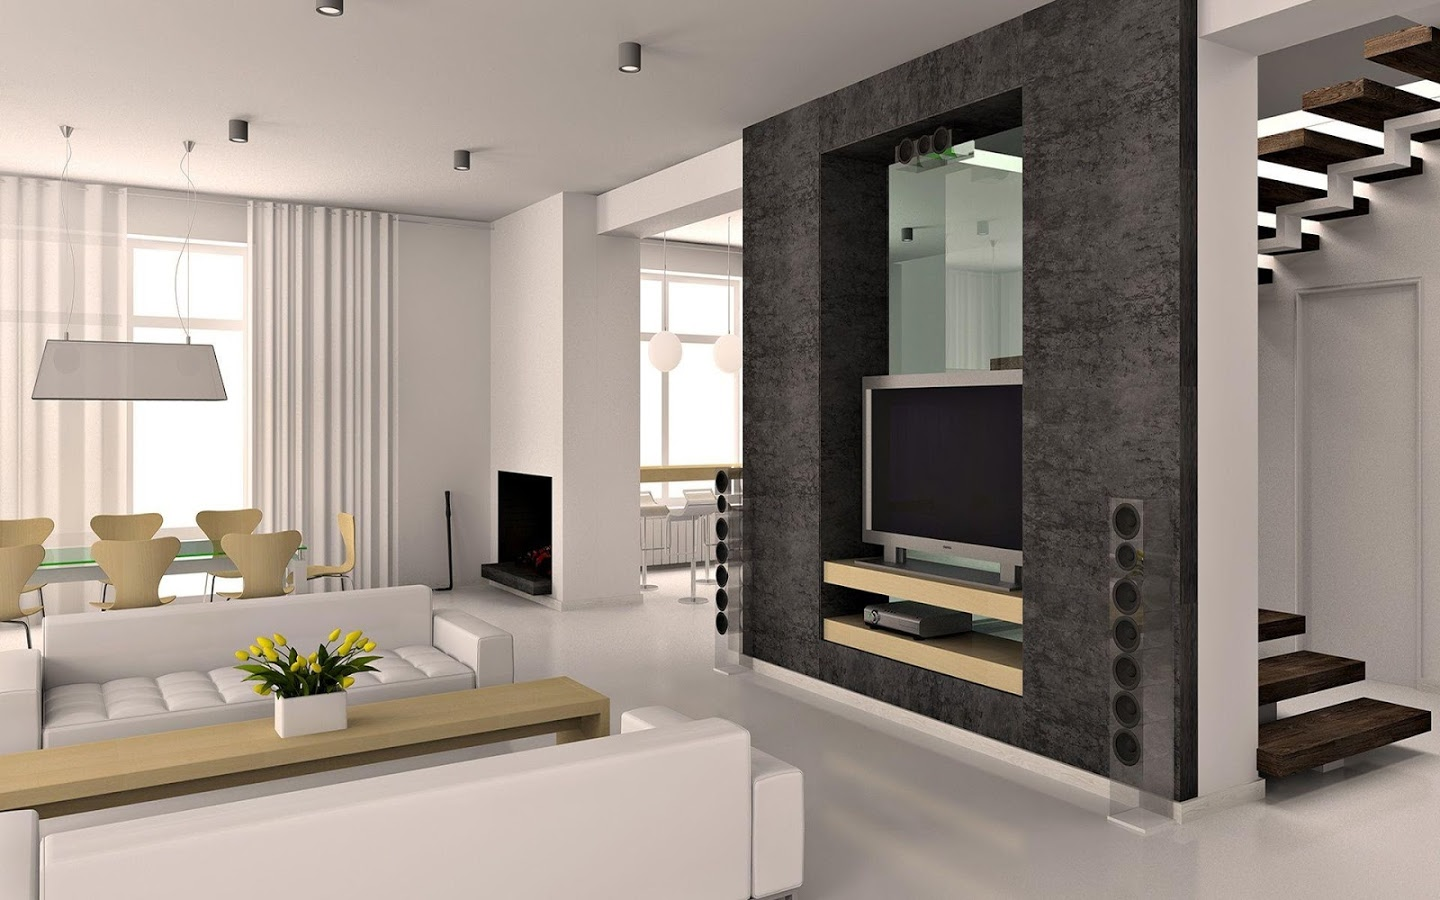 Amusing Design Of The Living Room Areas With Black Wall And Media Cabinets With White Sofa